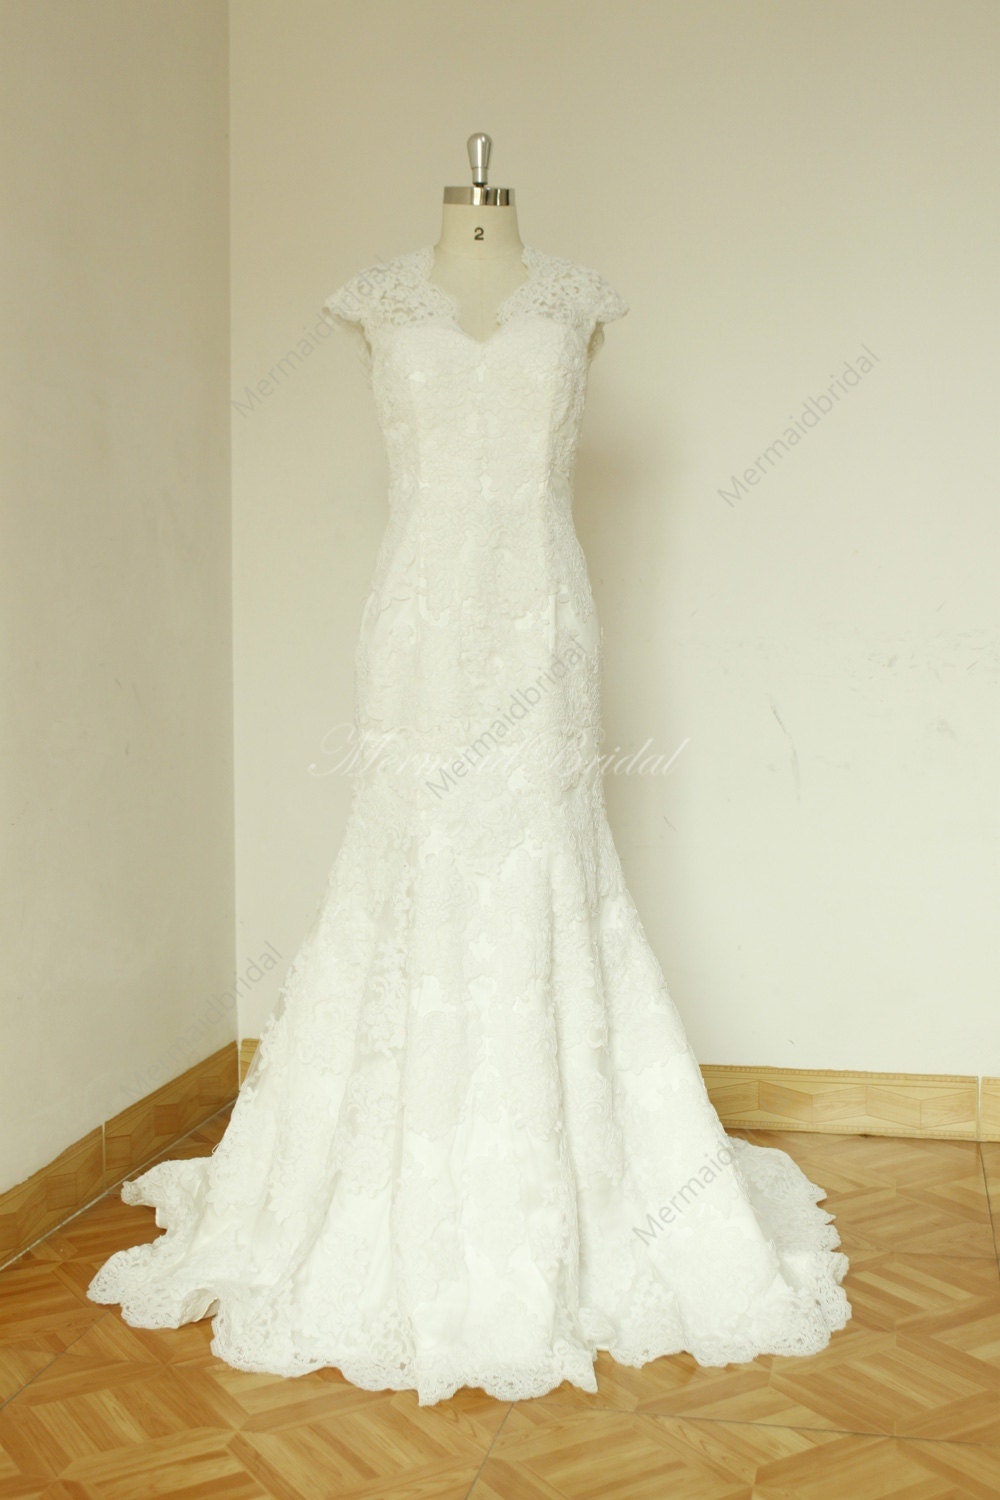 Fit and flare sleeves Vintage lace Wedding dress with Keyhole back, Mermaid wedding gown with scallop neckline